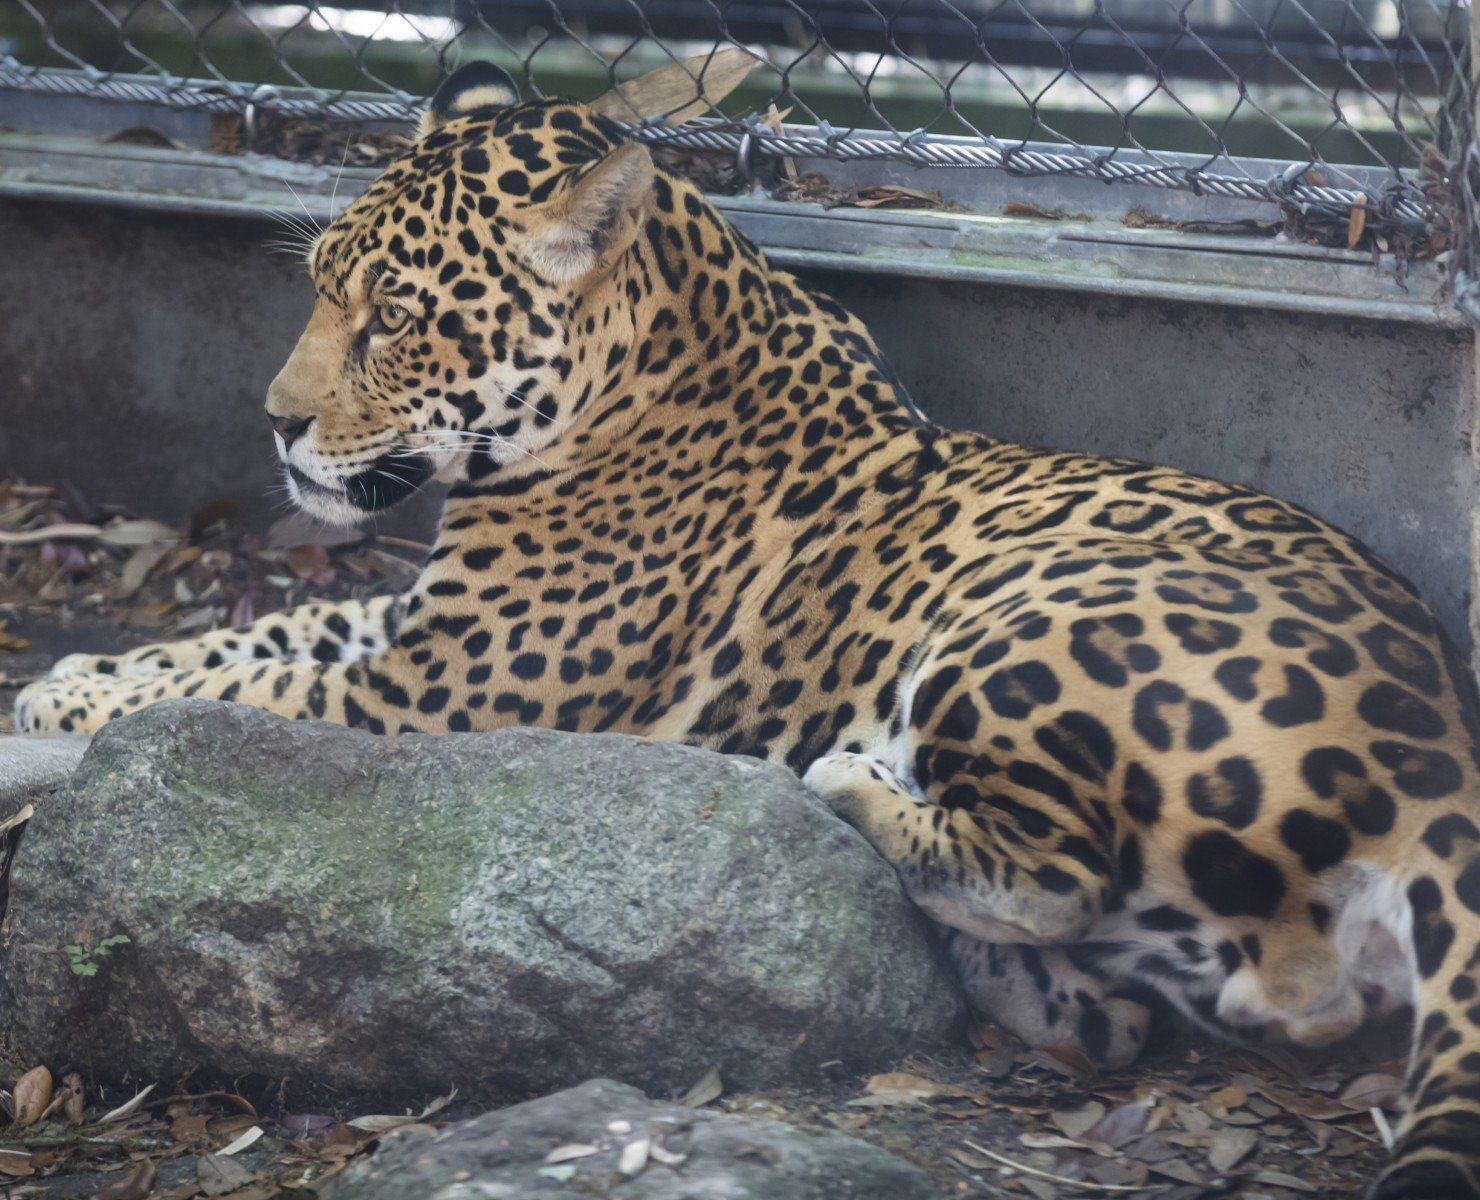 Escaped jaguar Valerio